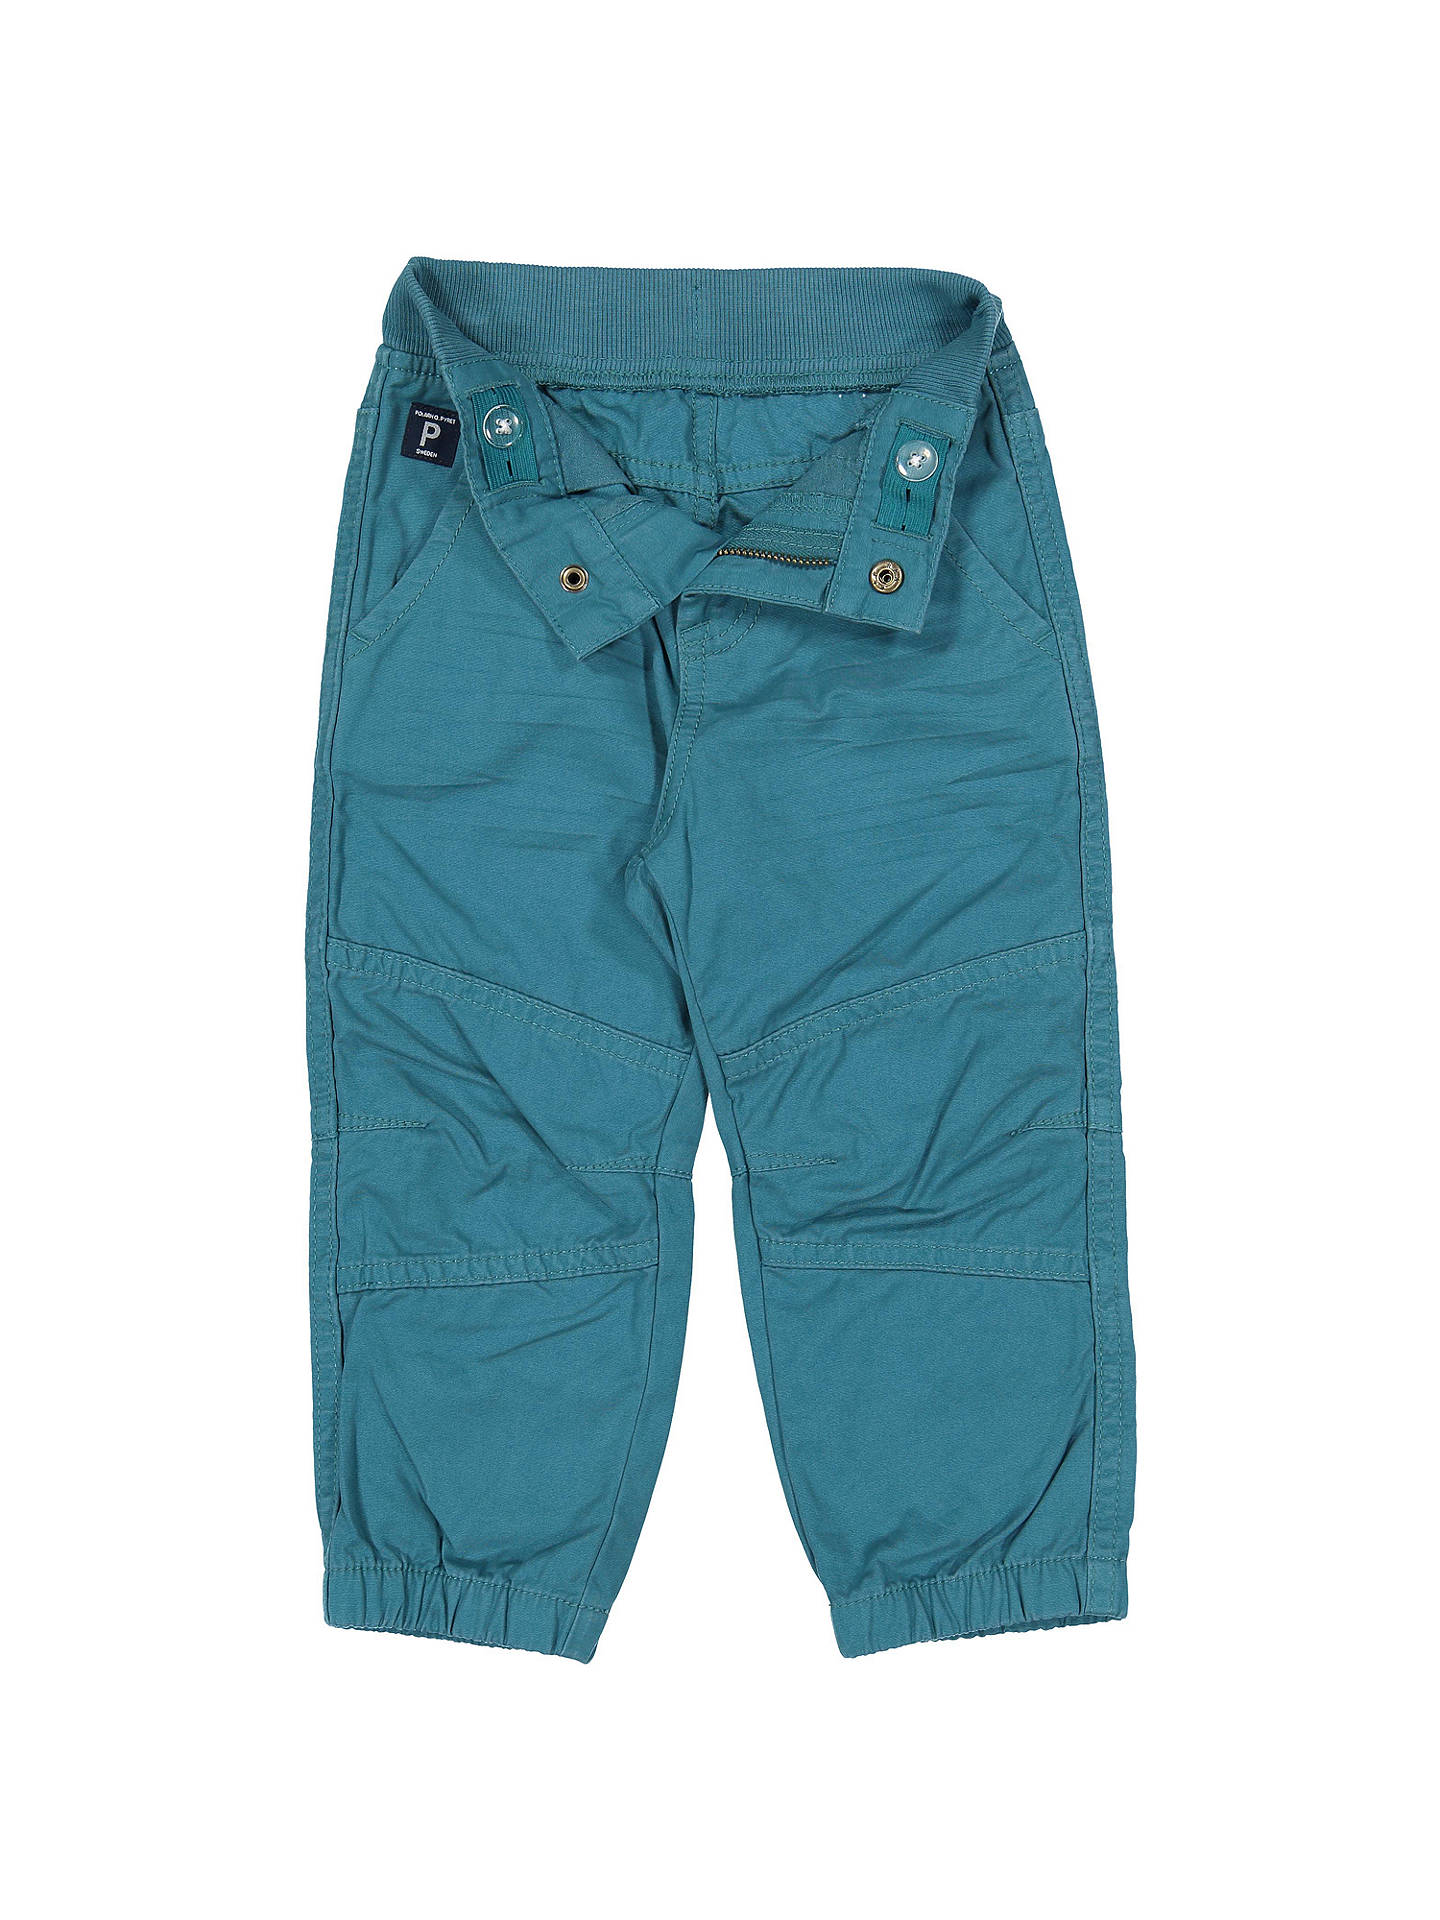 BuyPolarn O. Pyret Baby Cotton Cargo Trousers, Blue, 6-9 months Online at johnlewis.com